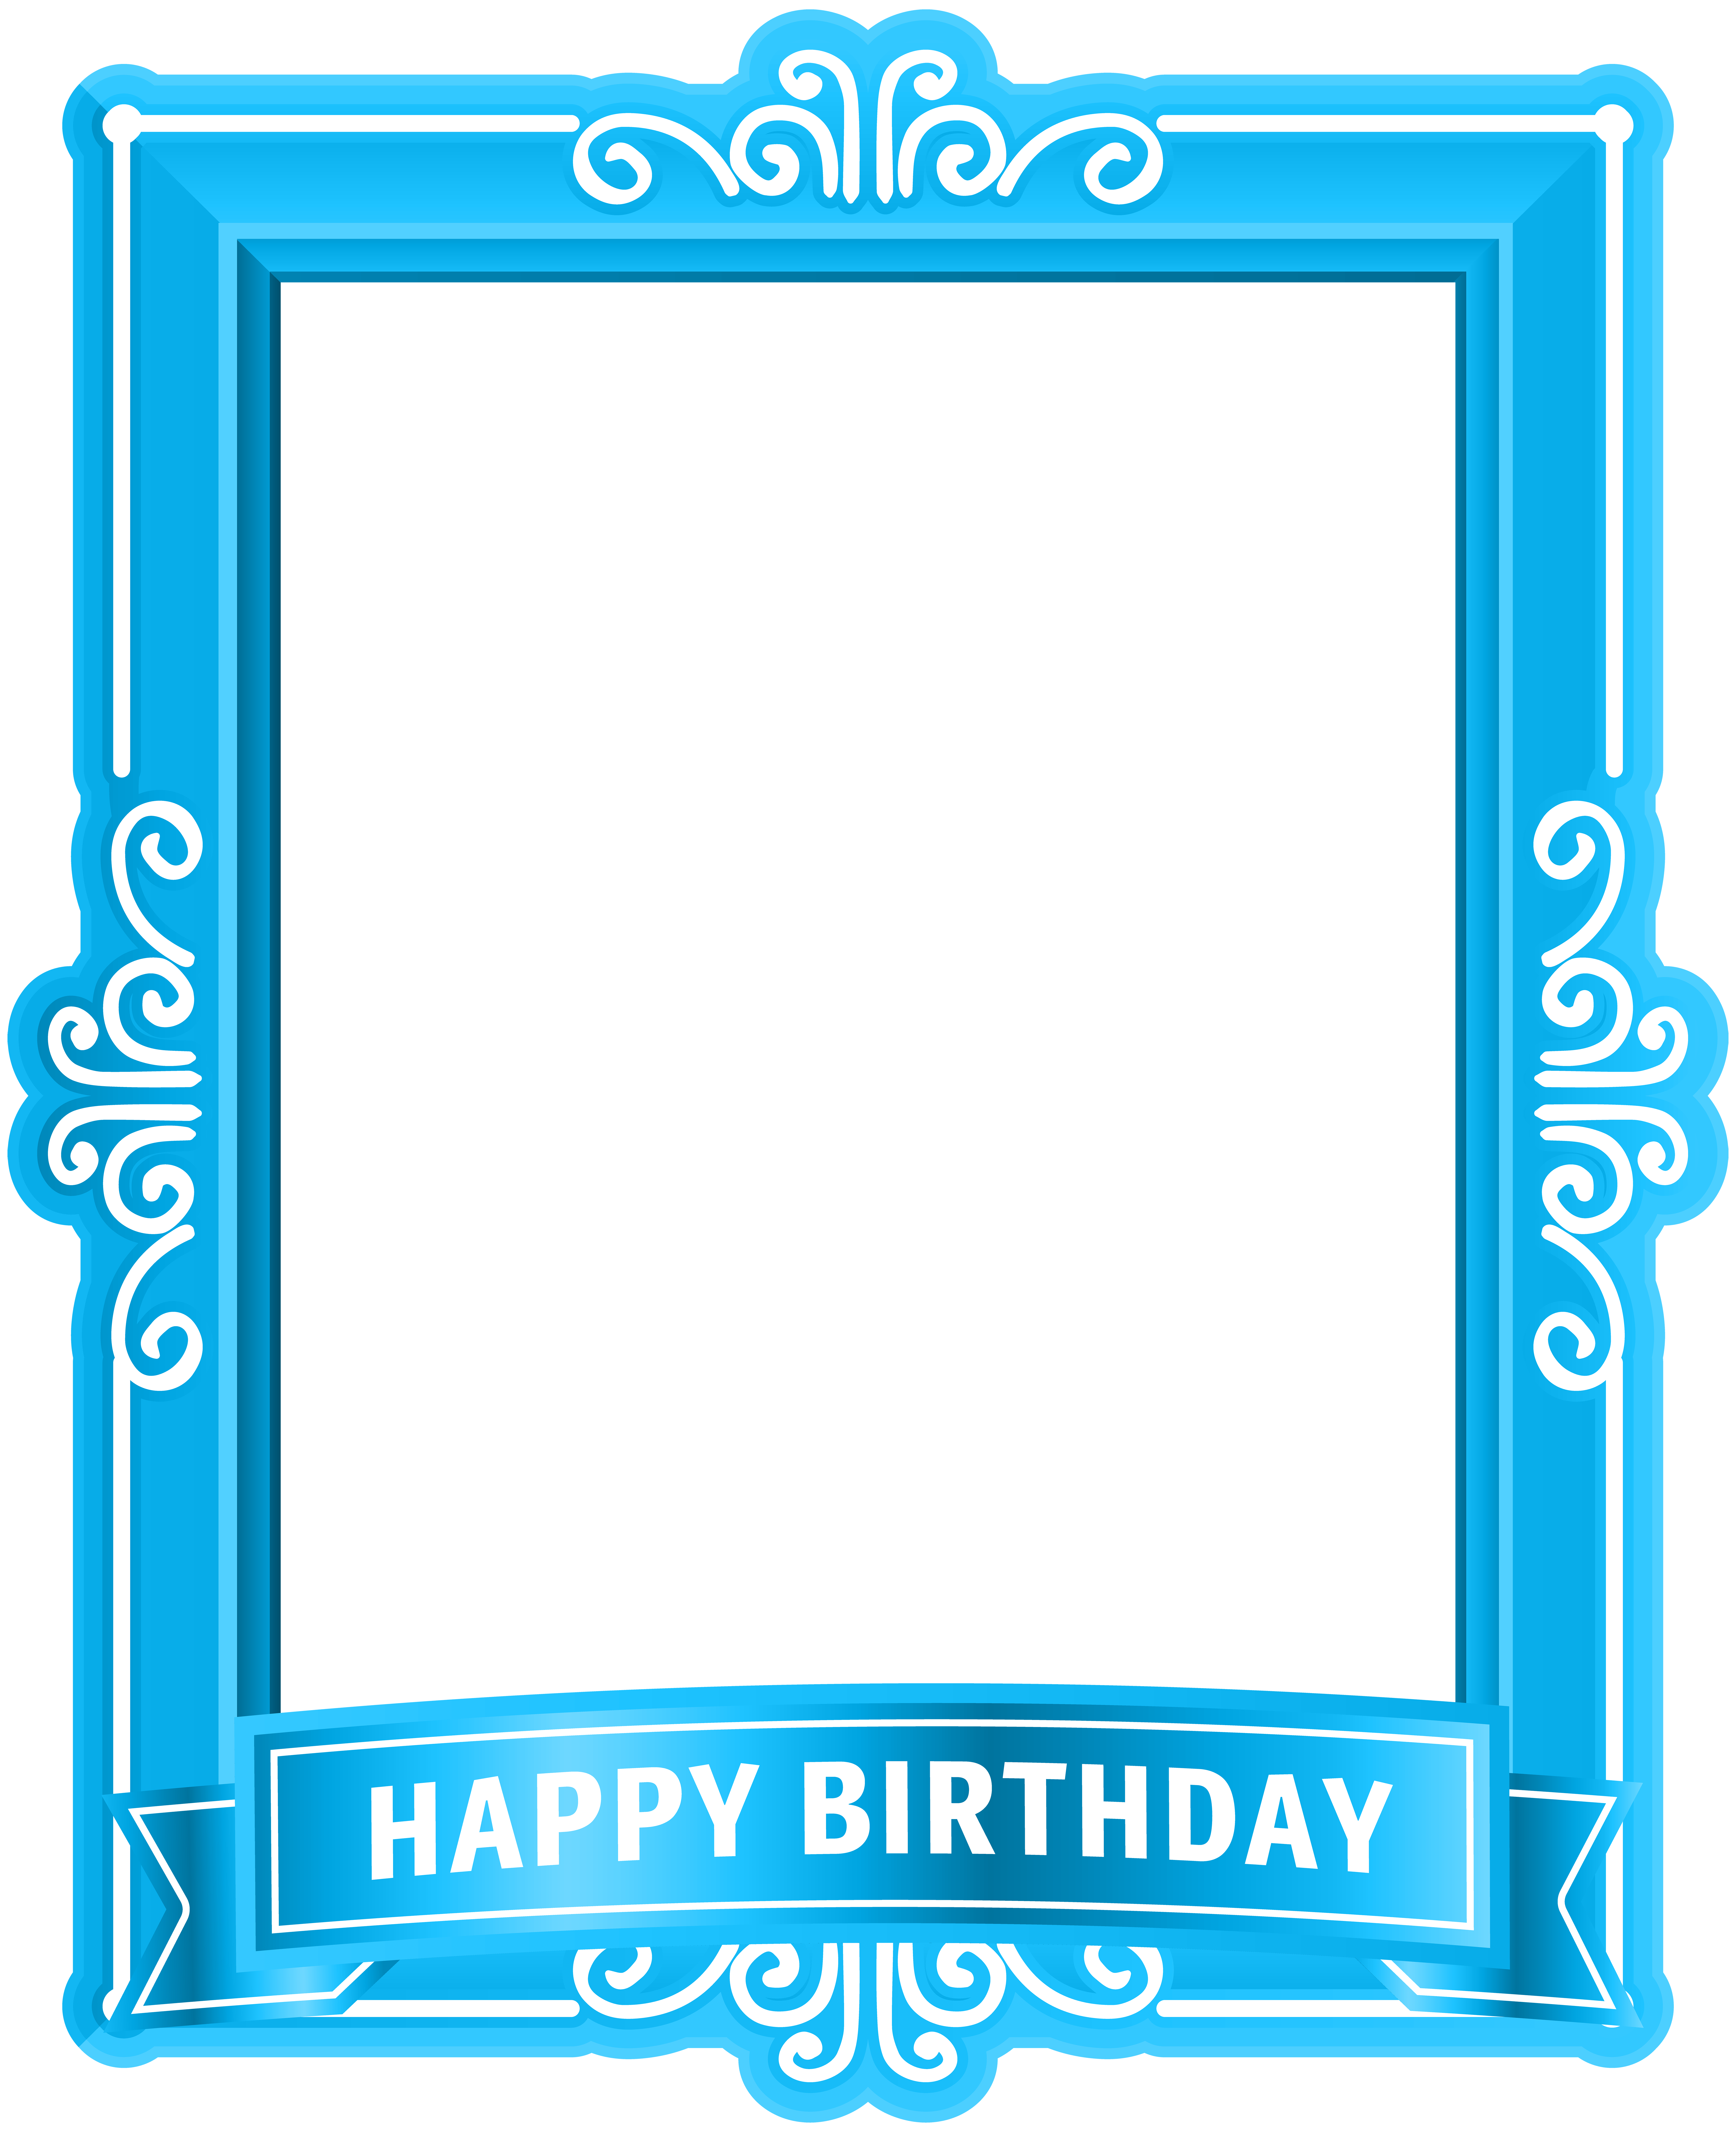 Cake to you clip. Frames clipart happy birthday